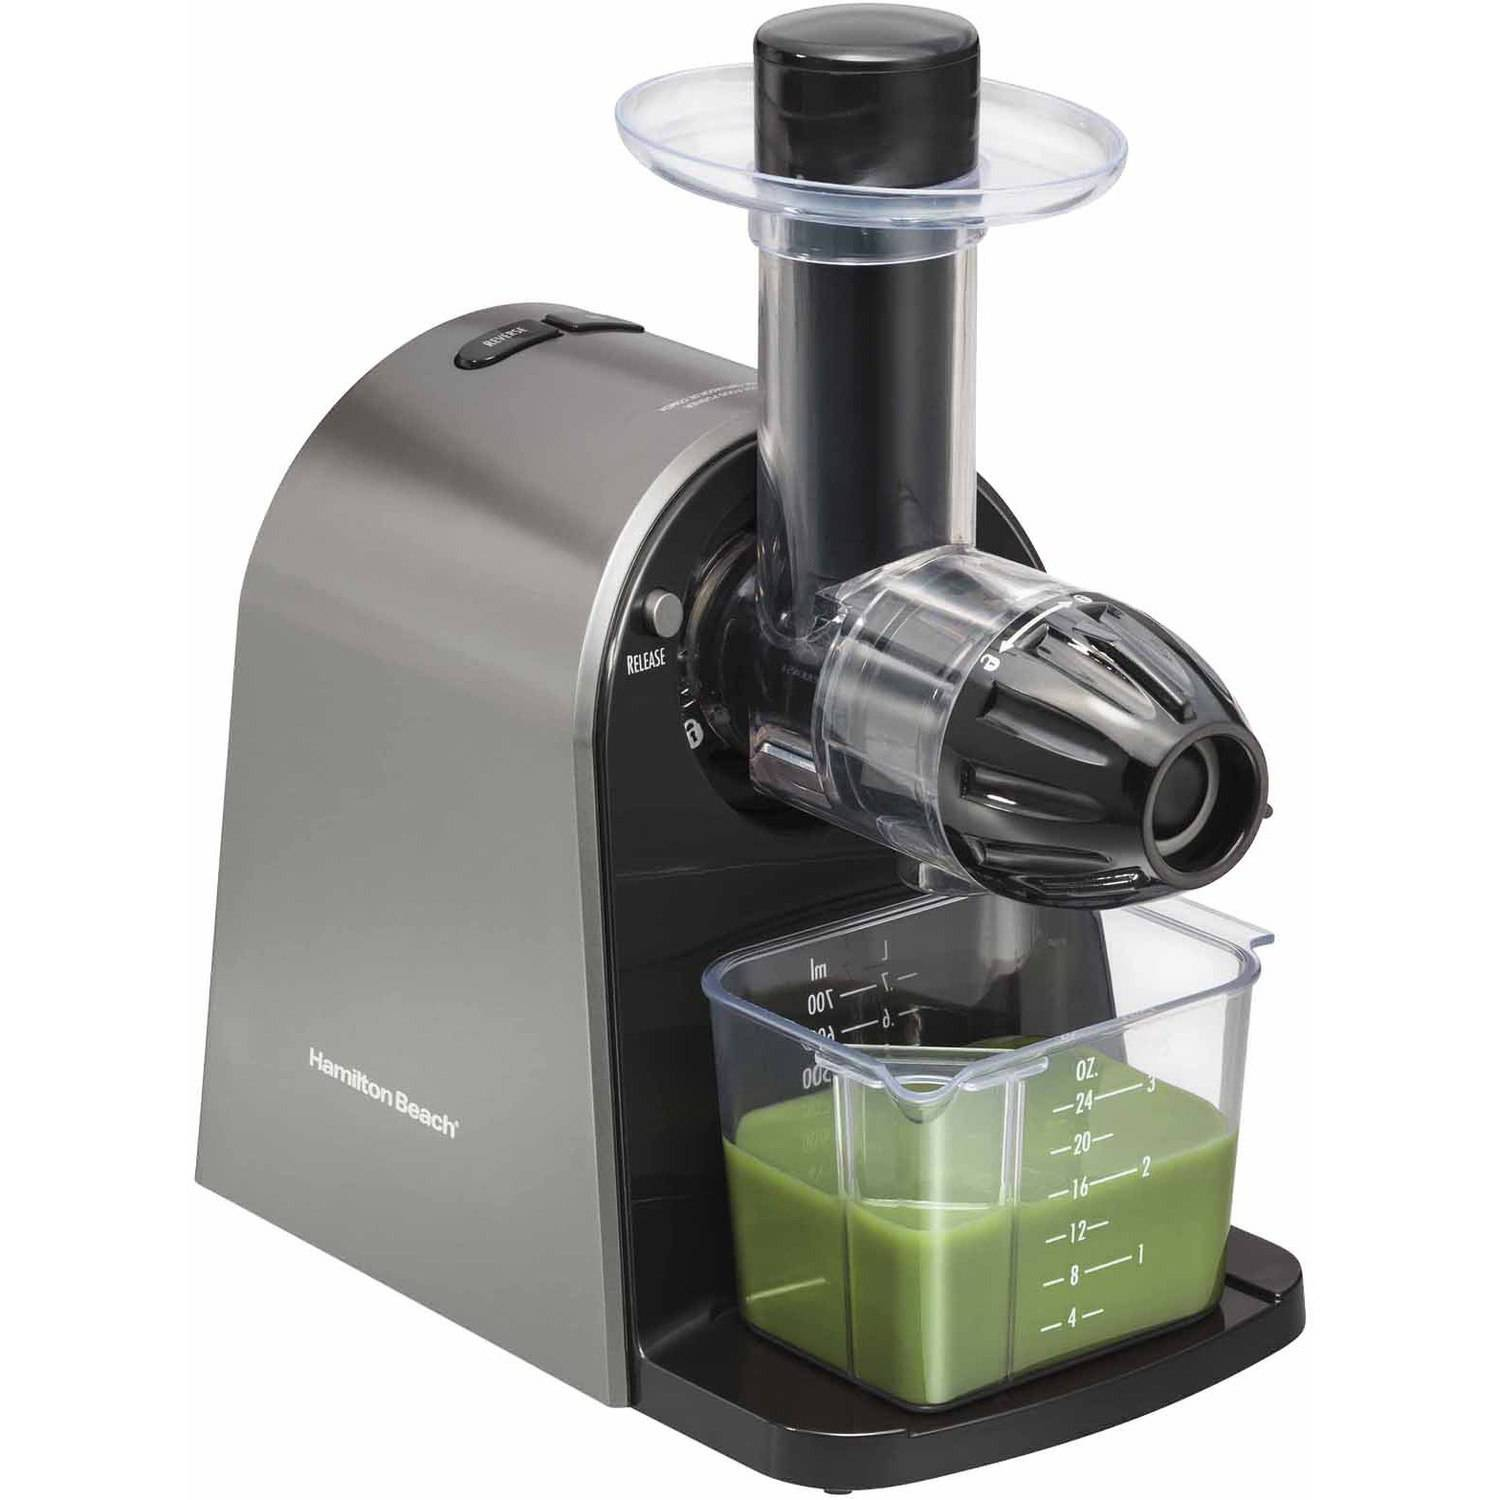 Slow Juicer Vs Cold Press : Cold Press Juicer Machine - Masticating Juicer Slow Juice Extractor Maker Electric Juicing ...